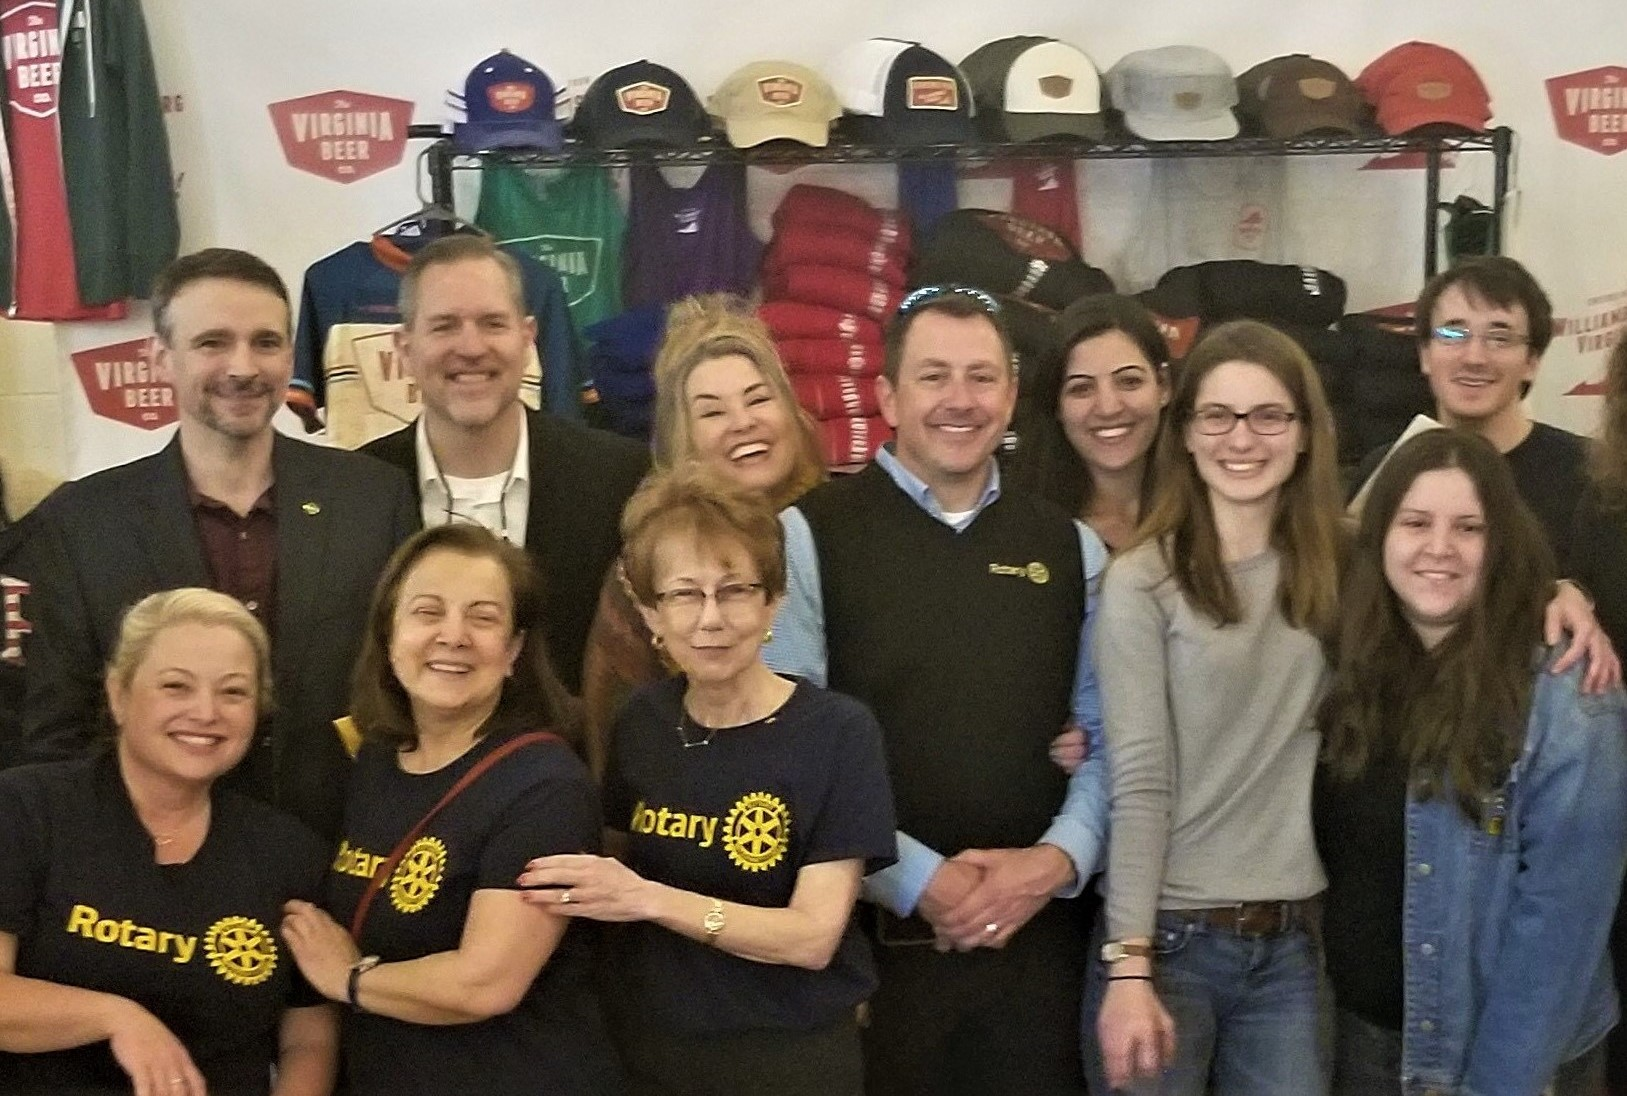 Satellite Club Members volunteer at a Rotaractor fundraiser at the Virginia Beer Company to help raise funds for a wheelchair-accessible van for a local family.